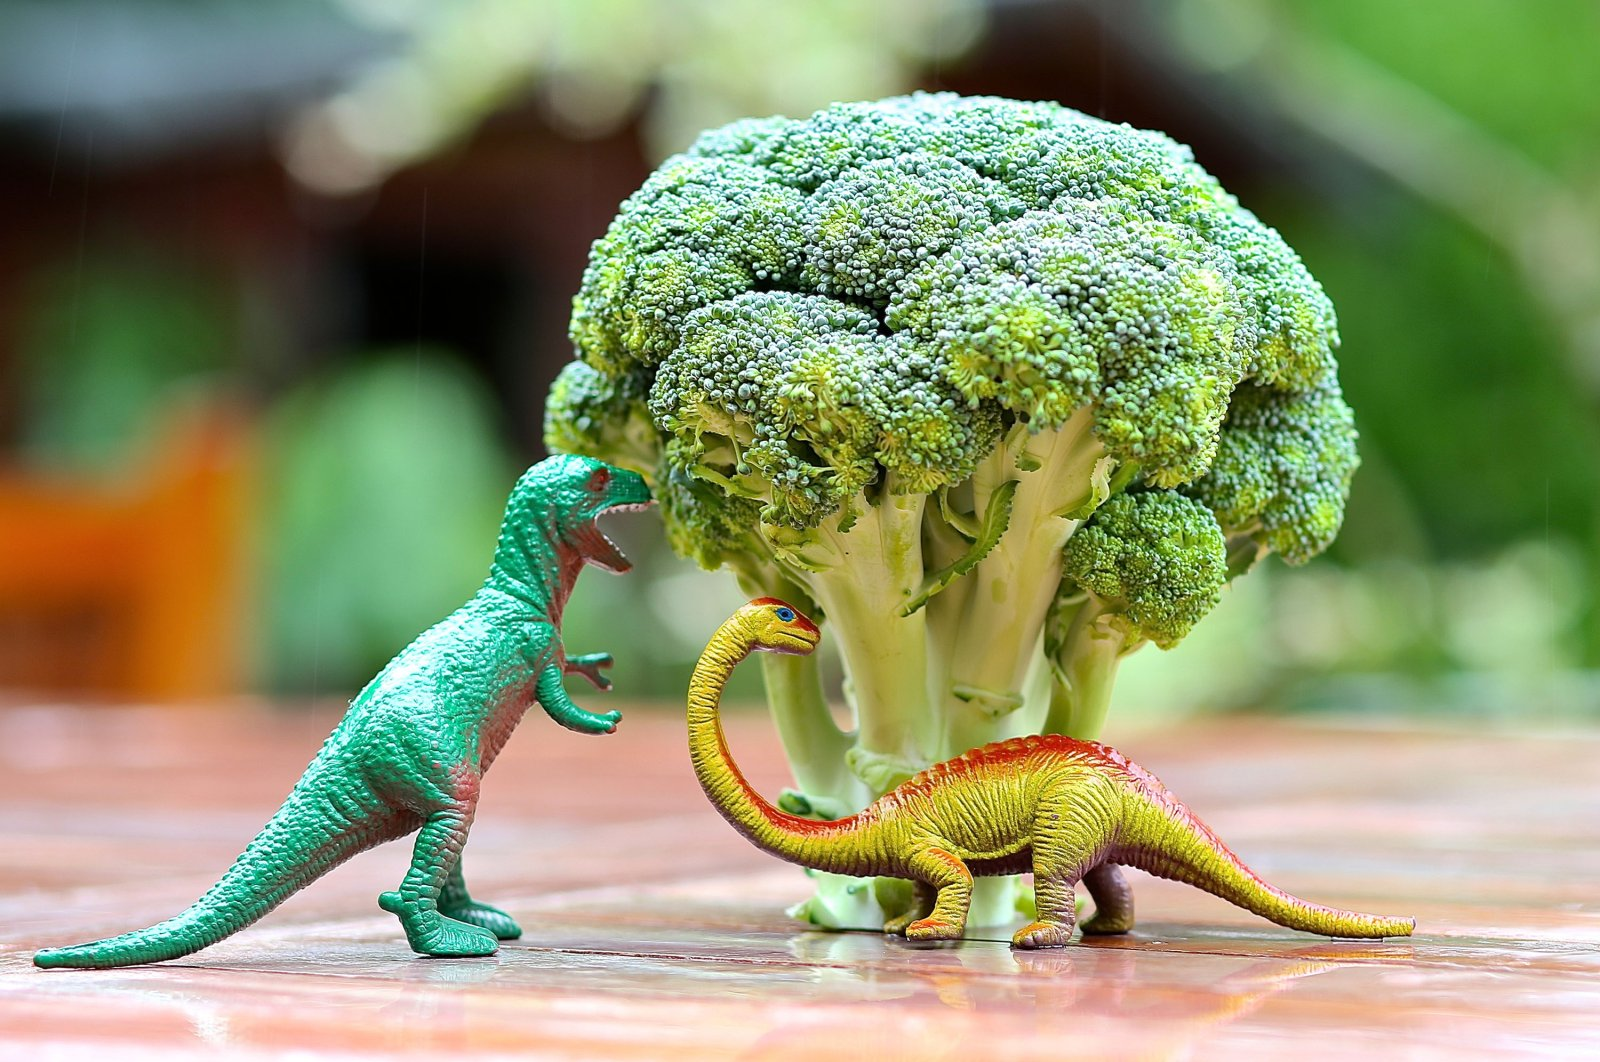 Toy dinosaurs appear to be eating from a broccoli tree. (Shutterstock Photo)